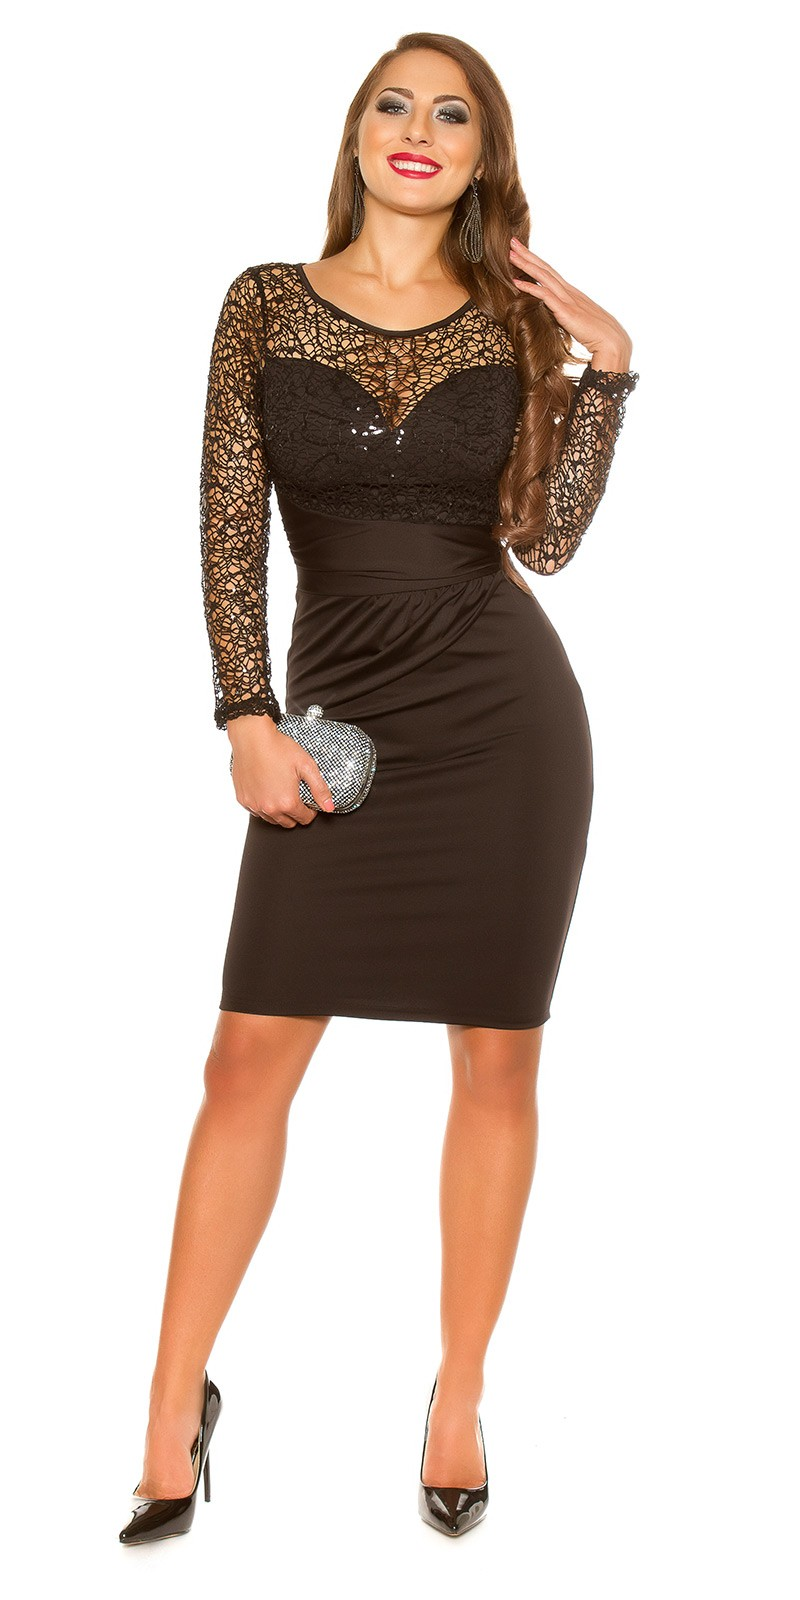 ookoucla partydress with lace  sequins  Color BLACK Size M 0000K19435 SCHWARZ 24 1 f7a12741373